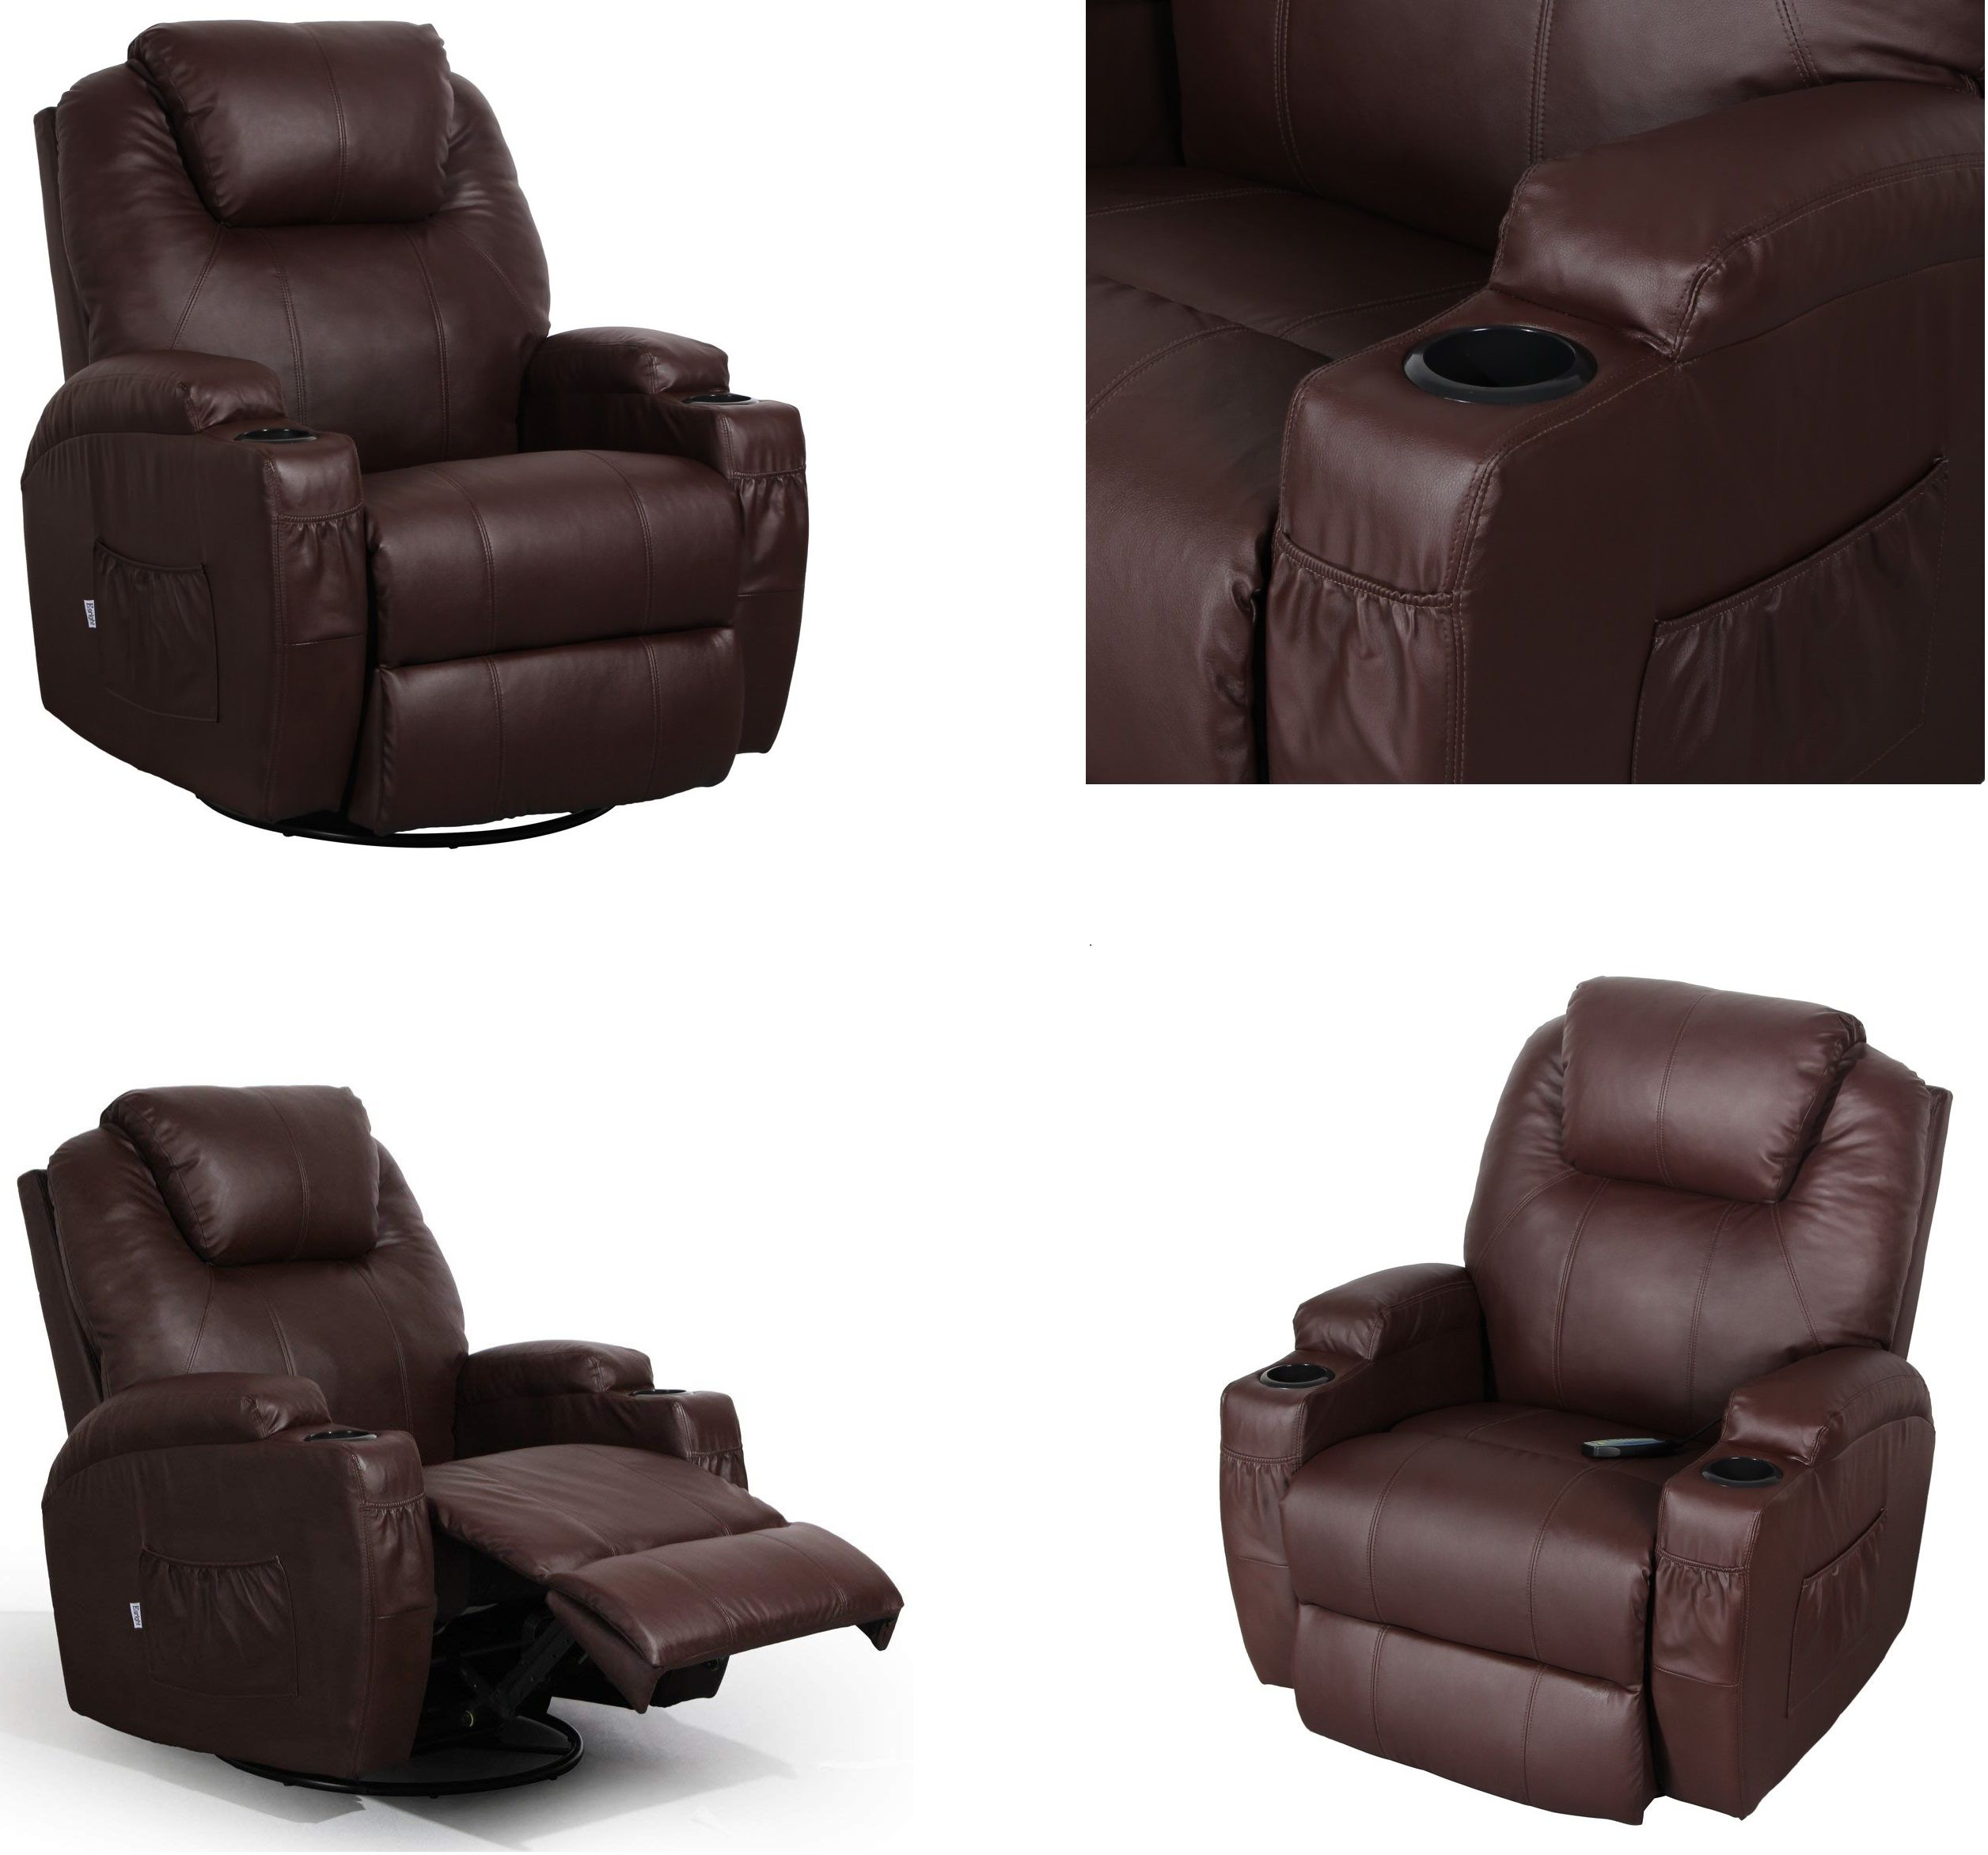 Cool Details About Massage Therapy Lazy Boy Leather Recliner Chair Heat Club Seat Rocker 360 Swive Gmtry Best Dining Table And Chair Ideas Images Gmtryco